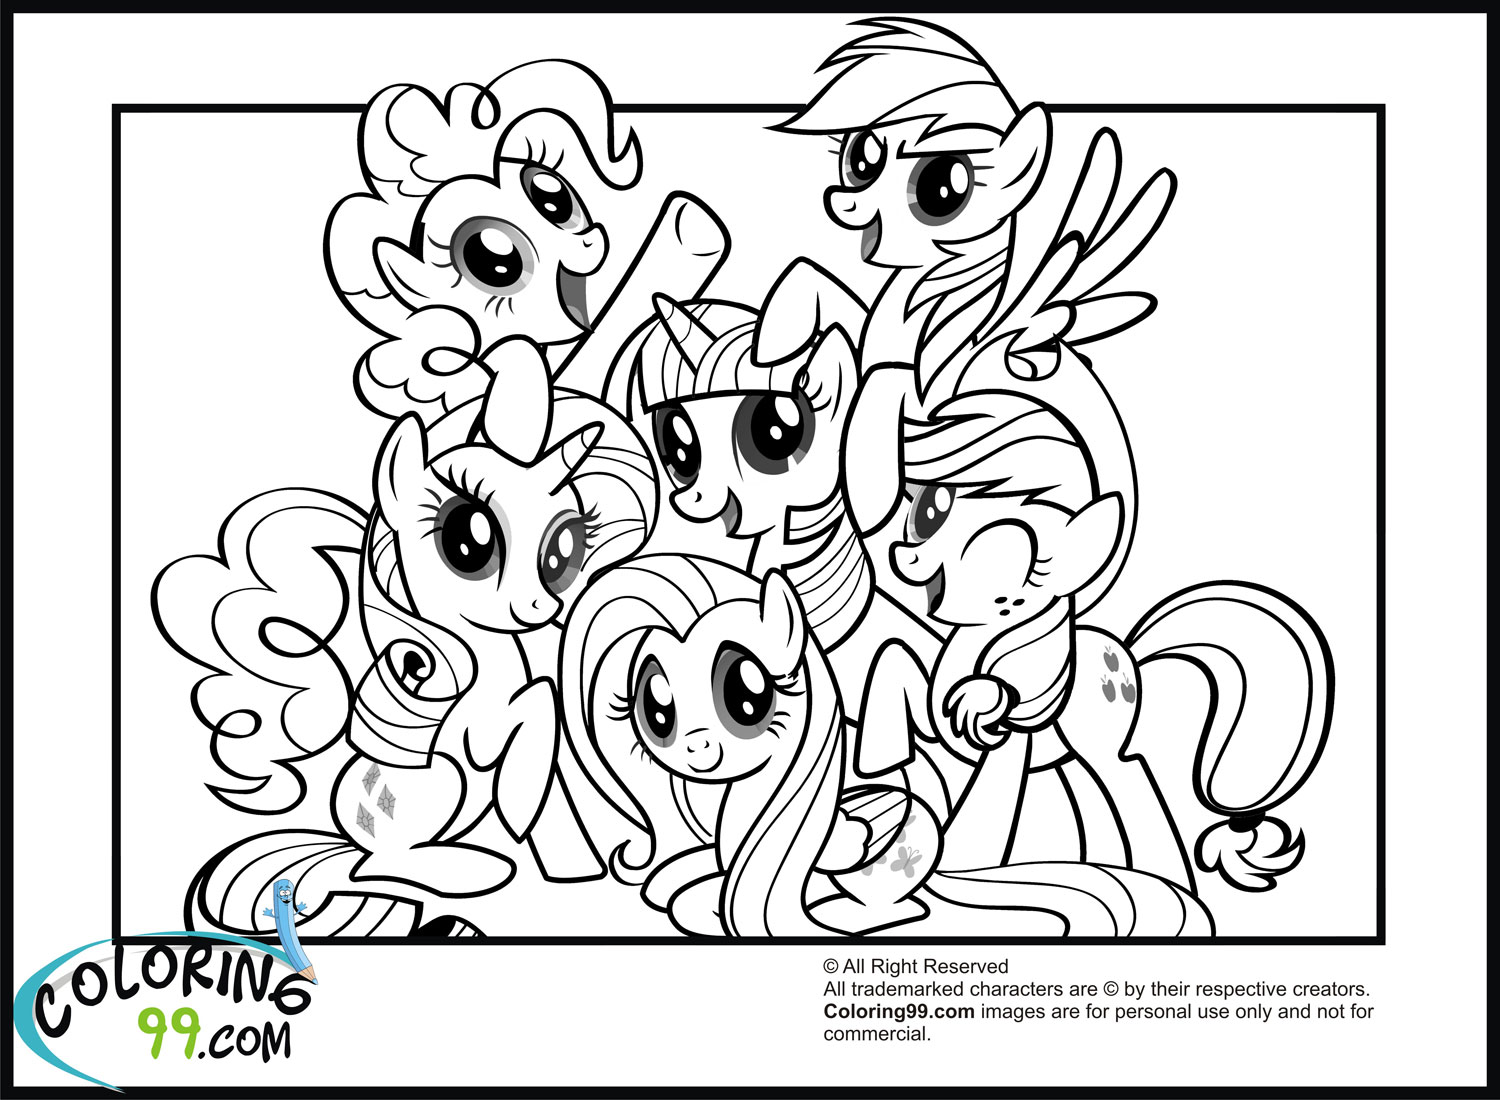 y little pony coloring pages - photo #35